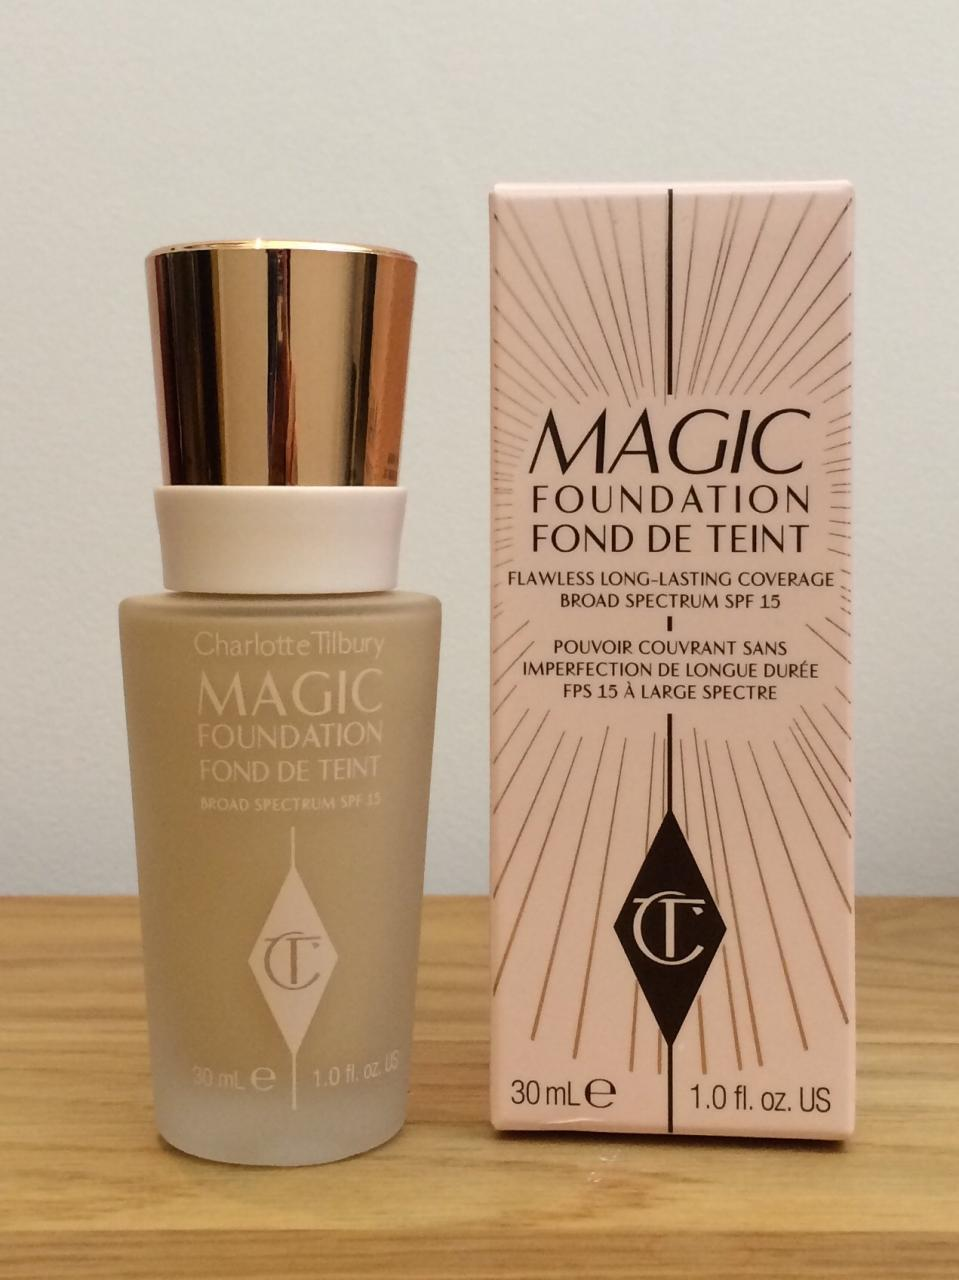 charlotte tilbury magic foundation shade 3.5 packaging